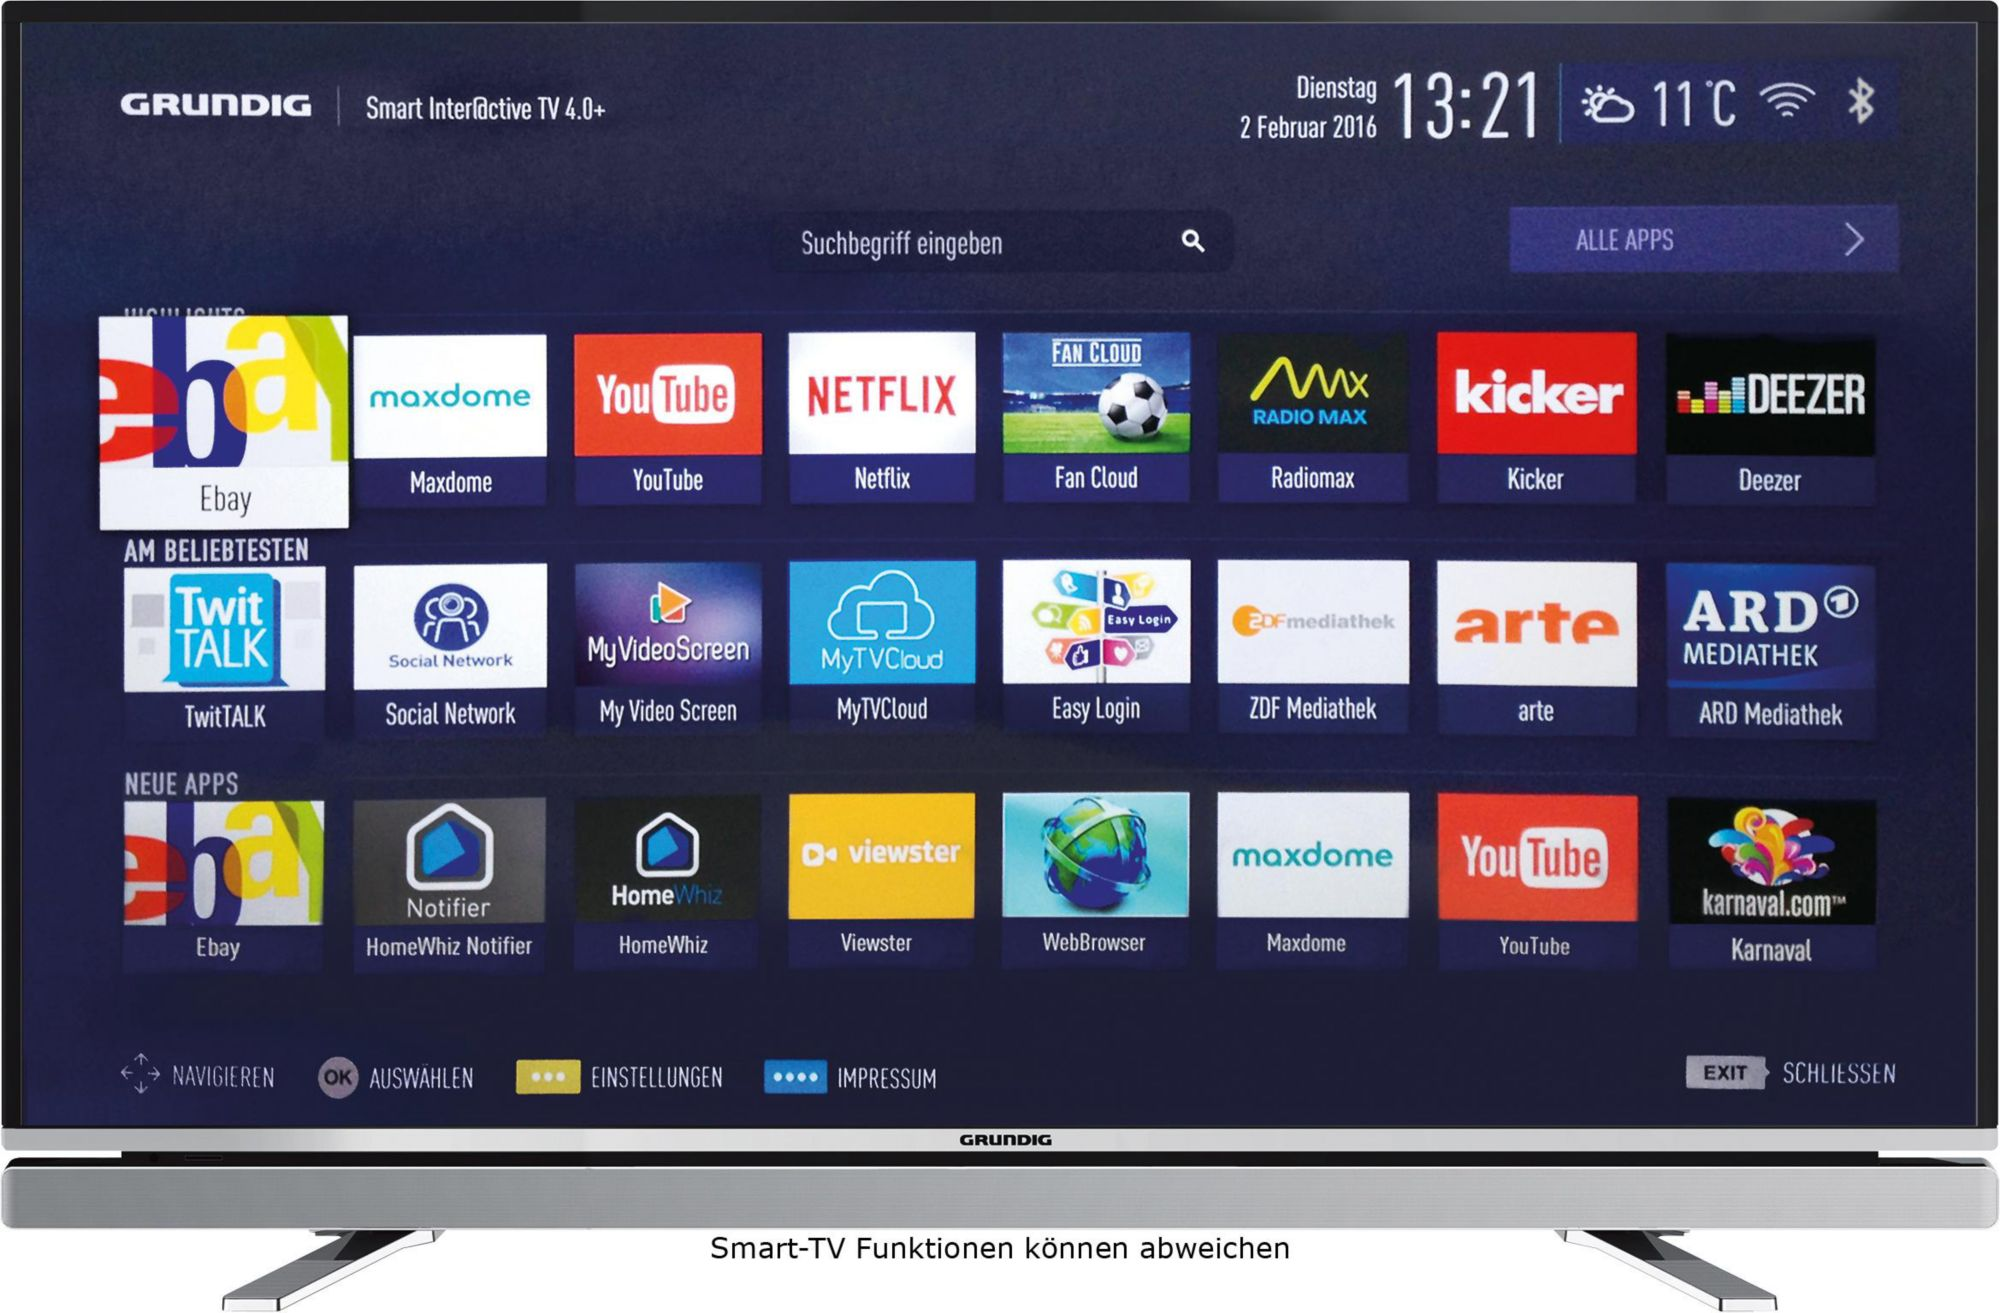 Samsung Un46es6500 Review besides Watch further Ecran Lcd further S Fernseher further Watch. on sony bravia led